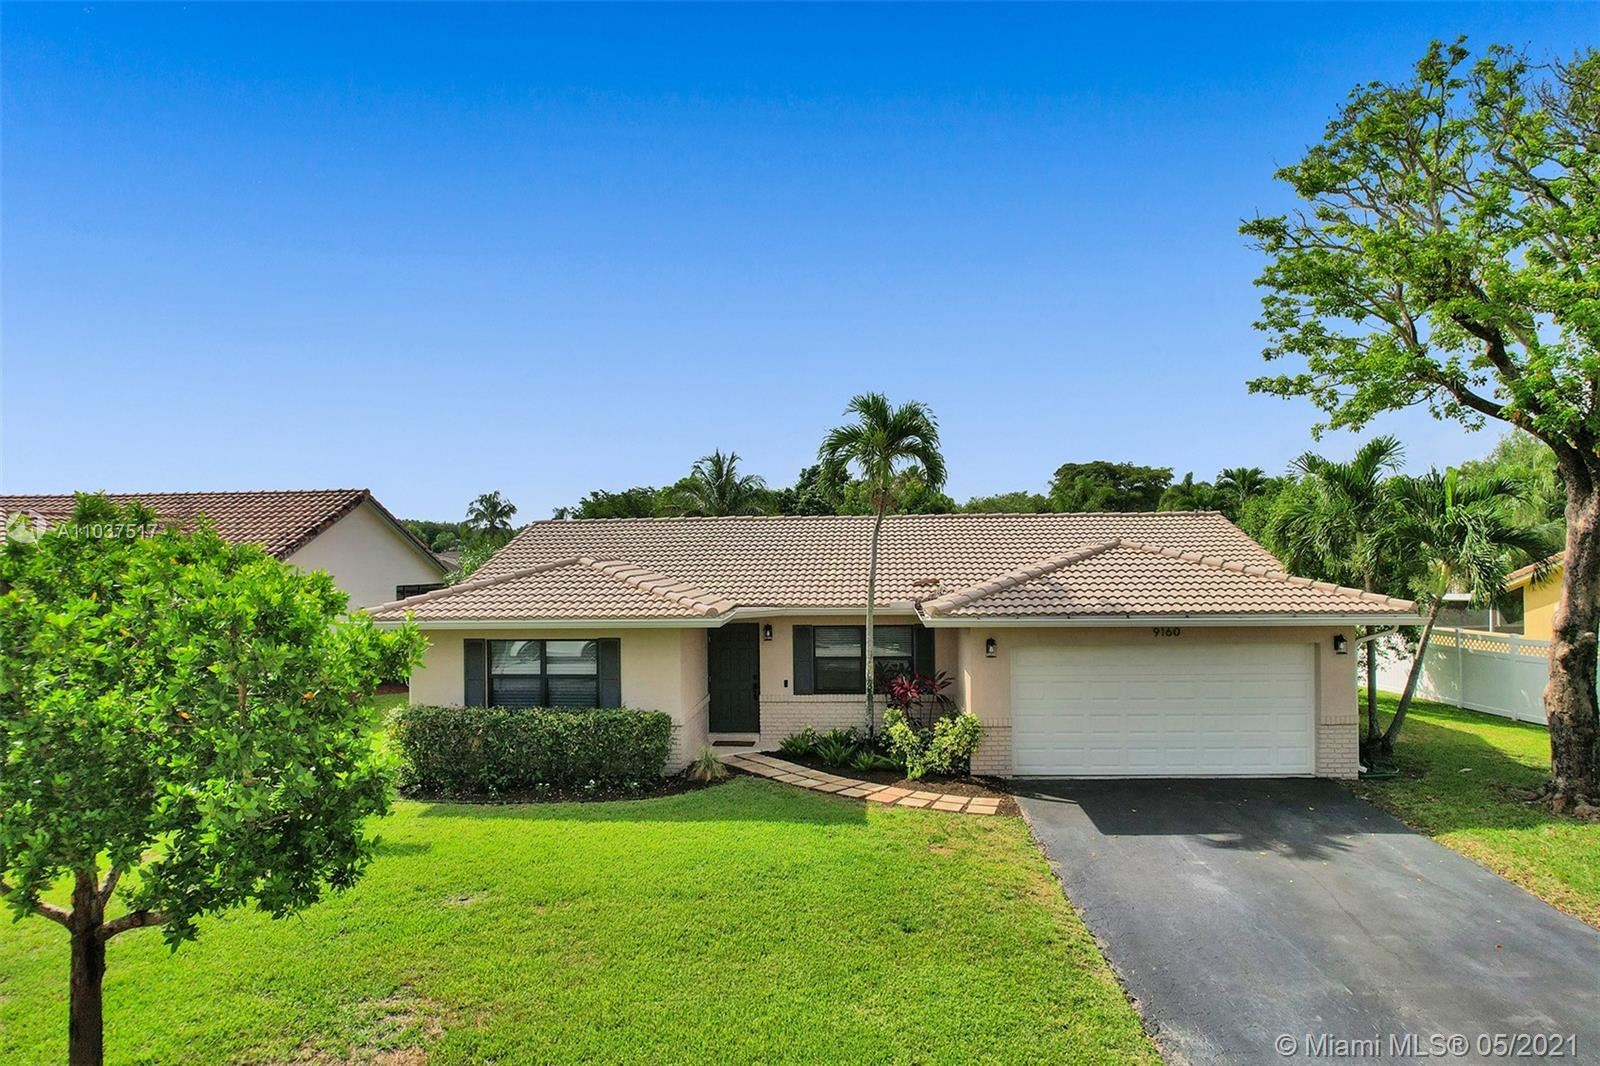 Photo of 9160 NW 21st St, Coral Springs, FL 33071 (MLS # A11037517)